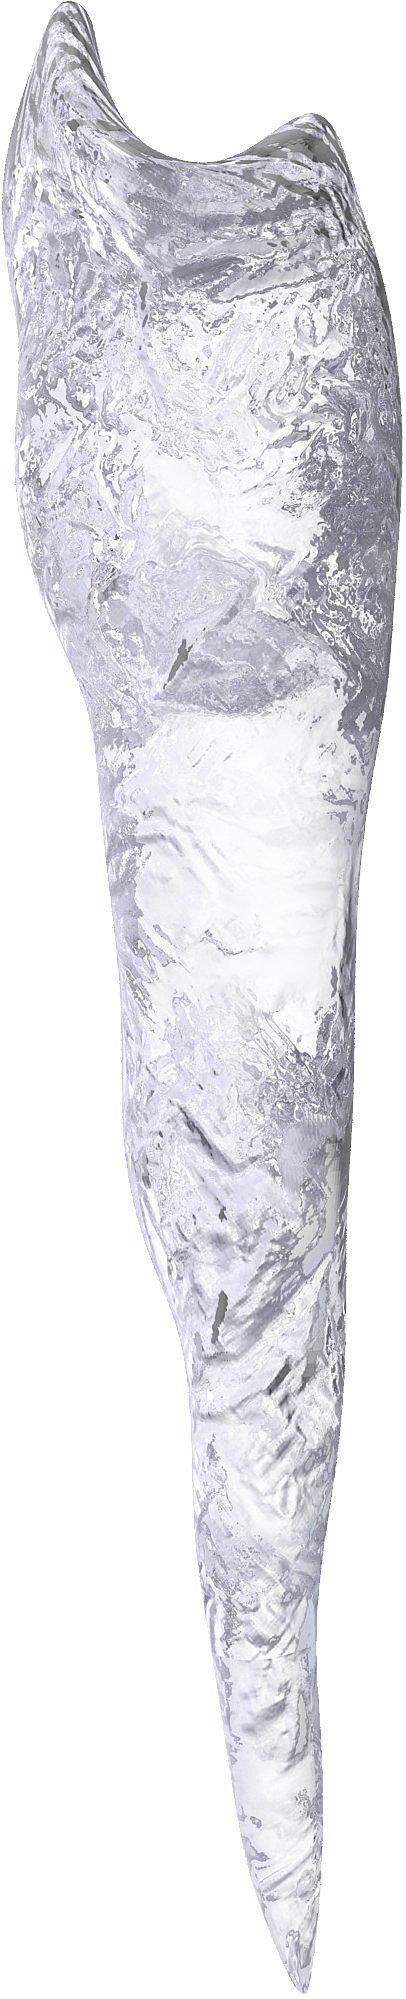 Png image . Icicles transparent one image download